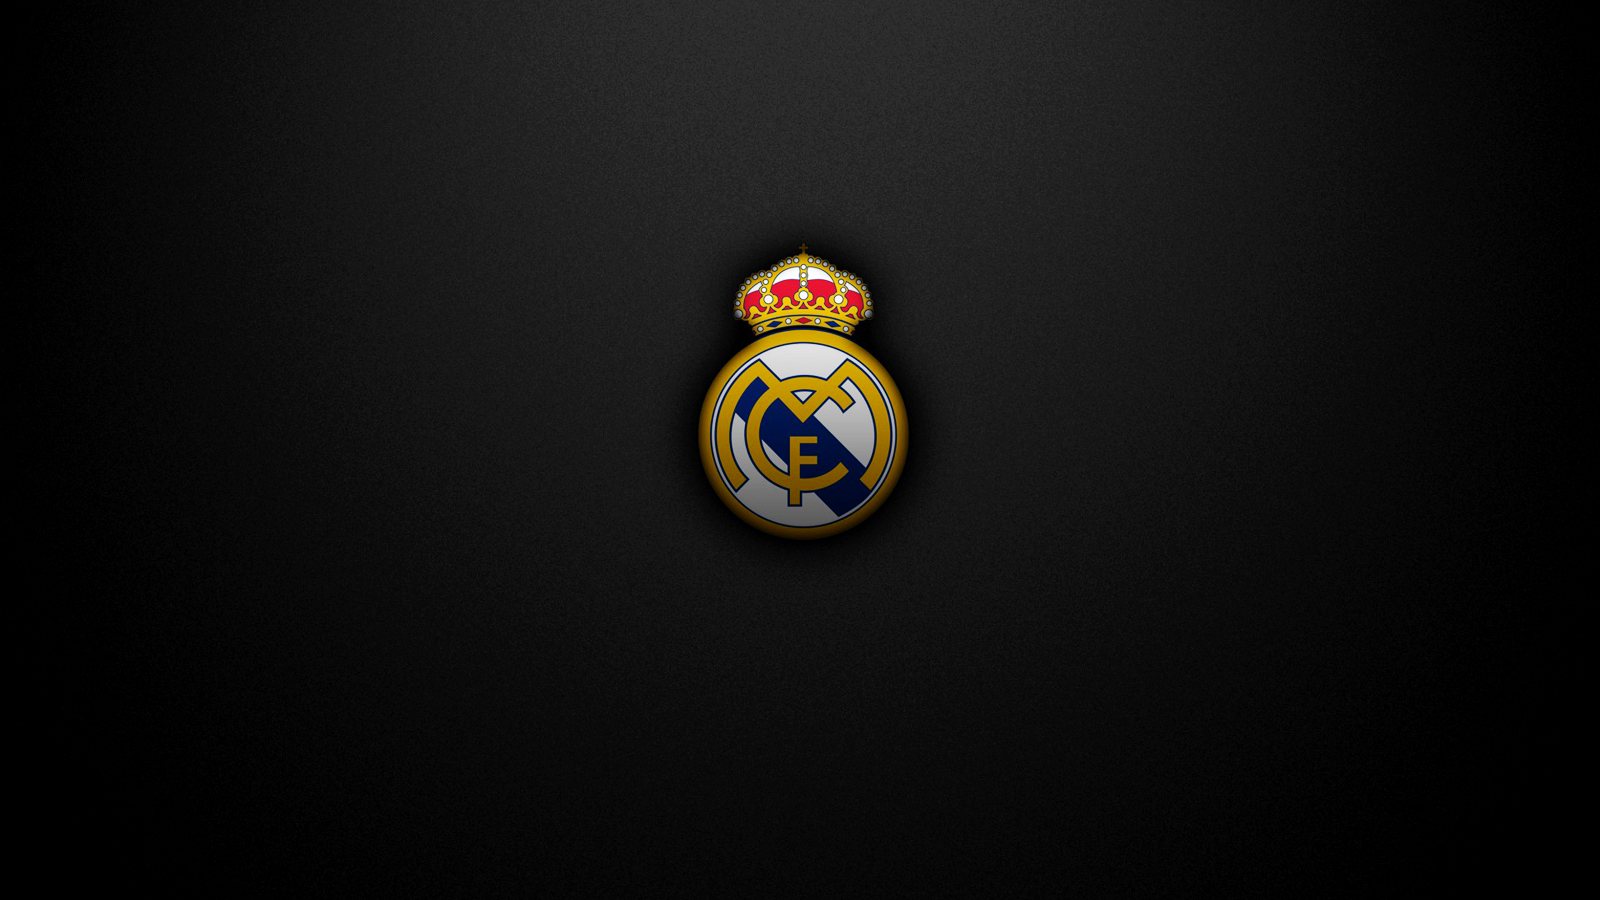 Black And White Madrid free download real madrid logo black and white the art mad